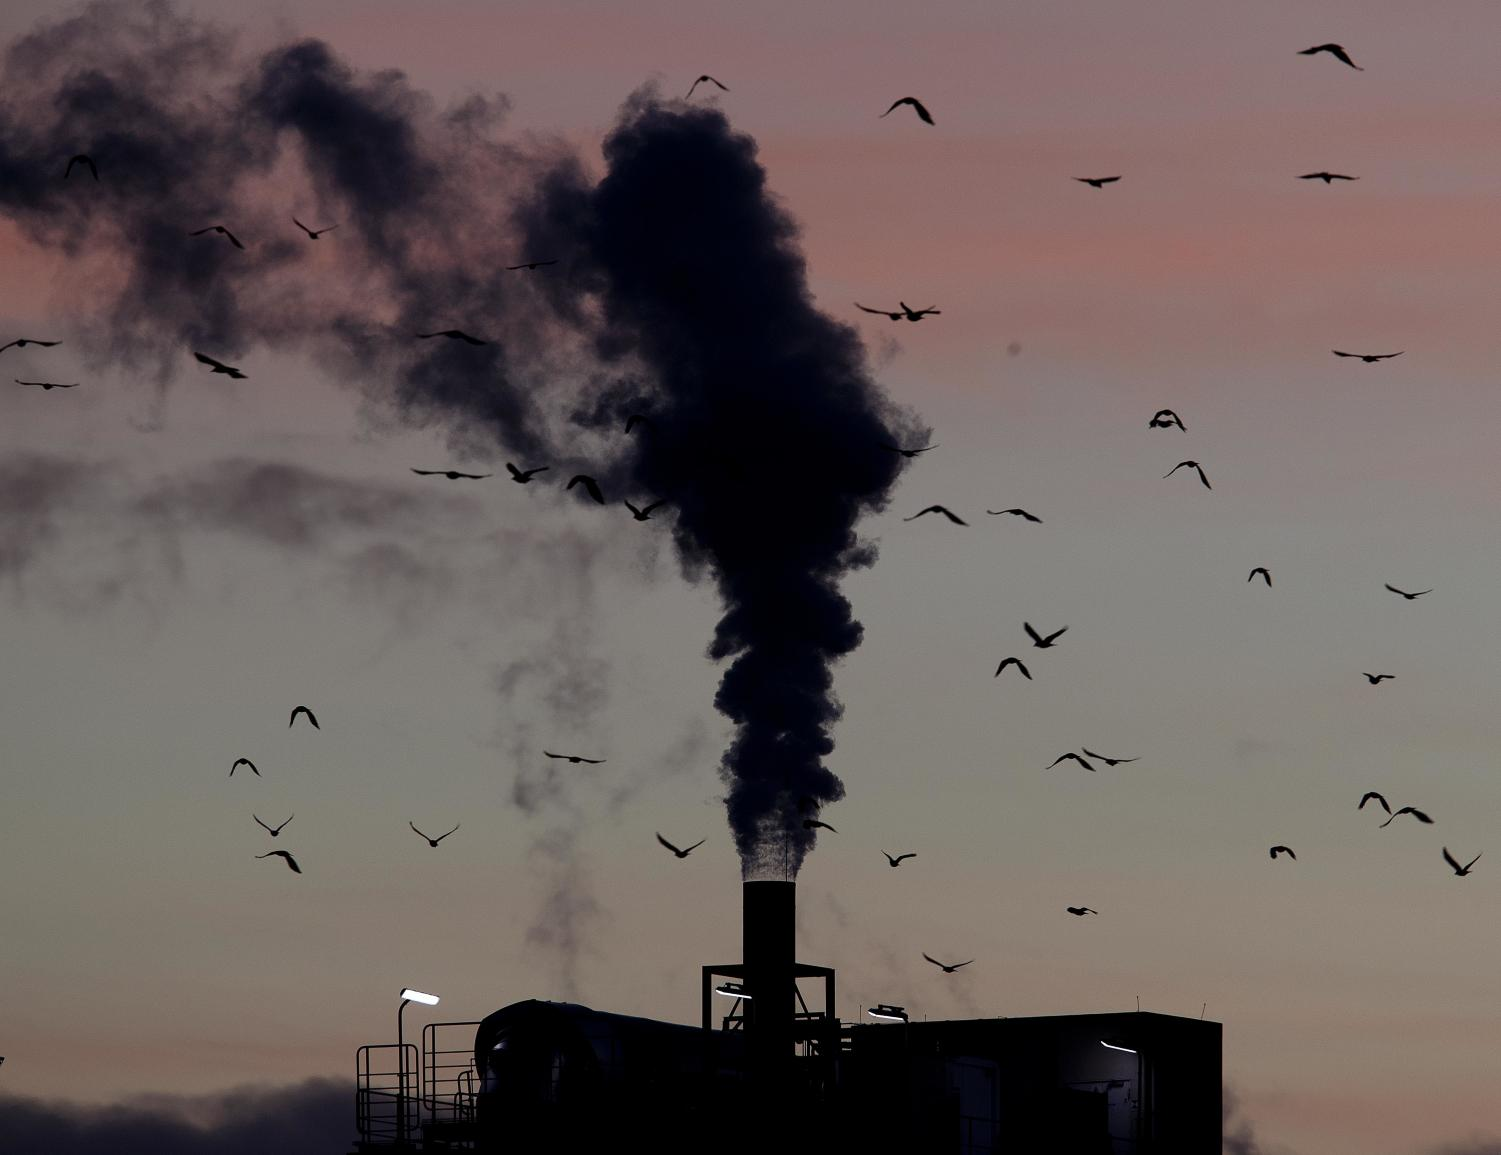 In this Dec. 4, 2018, file photo, birds fly past a smoking chimney in Ludwigshafen, Germany. Development that s led to loss of habitat, climate change, overfishing, pollution and invasive species is causing a biodiversity crisis, scientists say in a new United Nations science report released May 6, 2019.